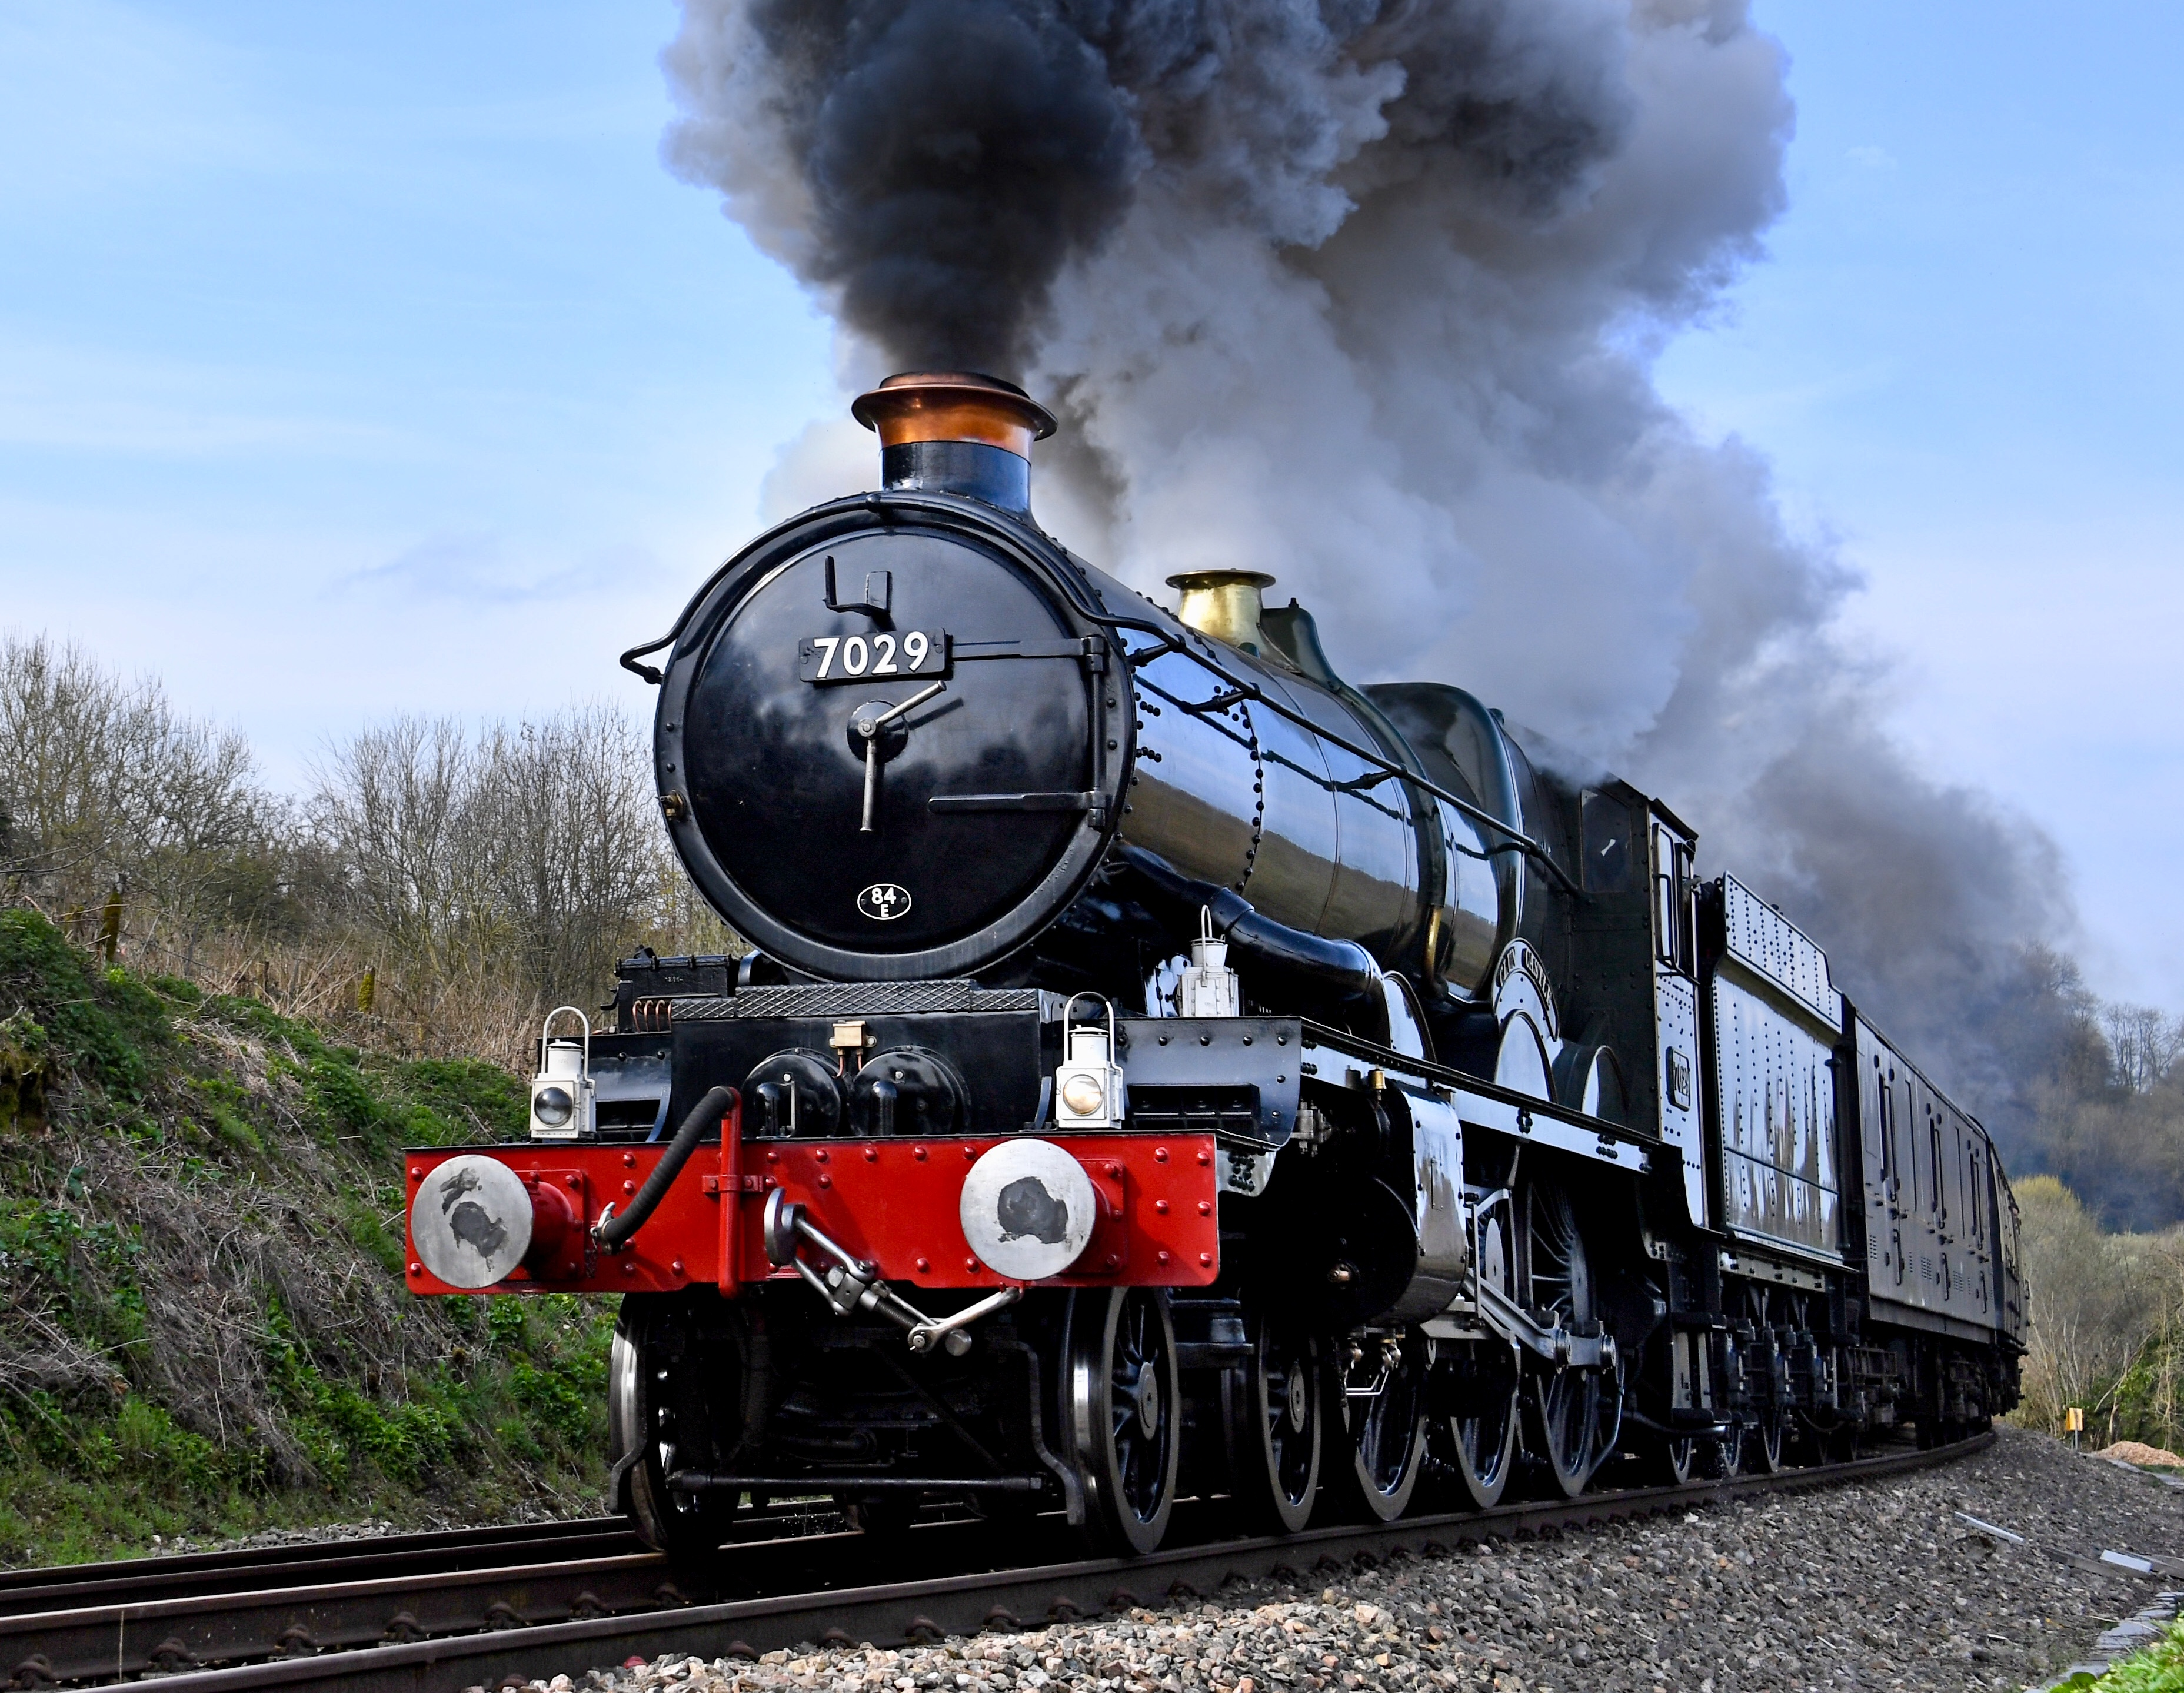 Rail enthusiasts urged to stay safe as historic engine